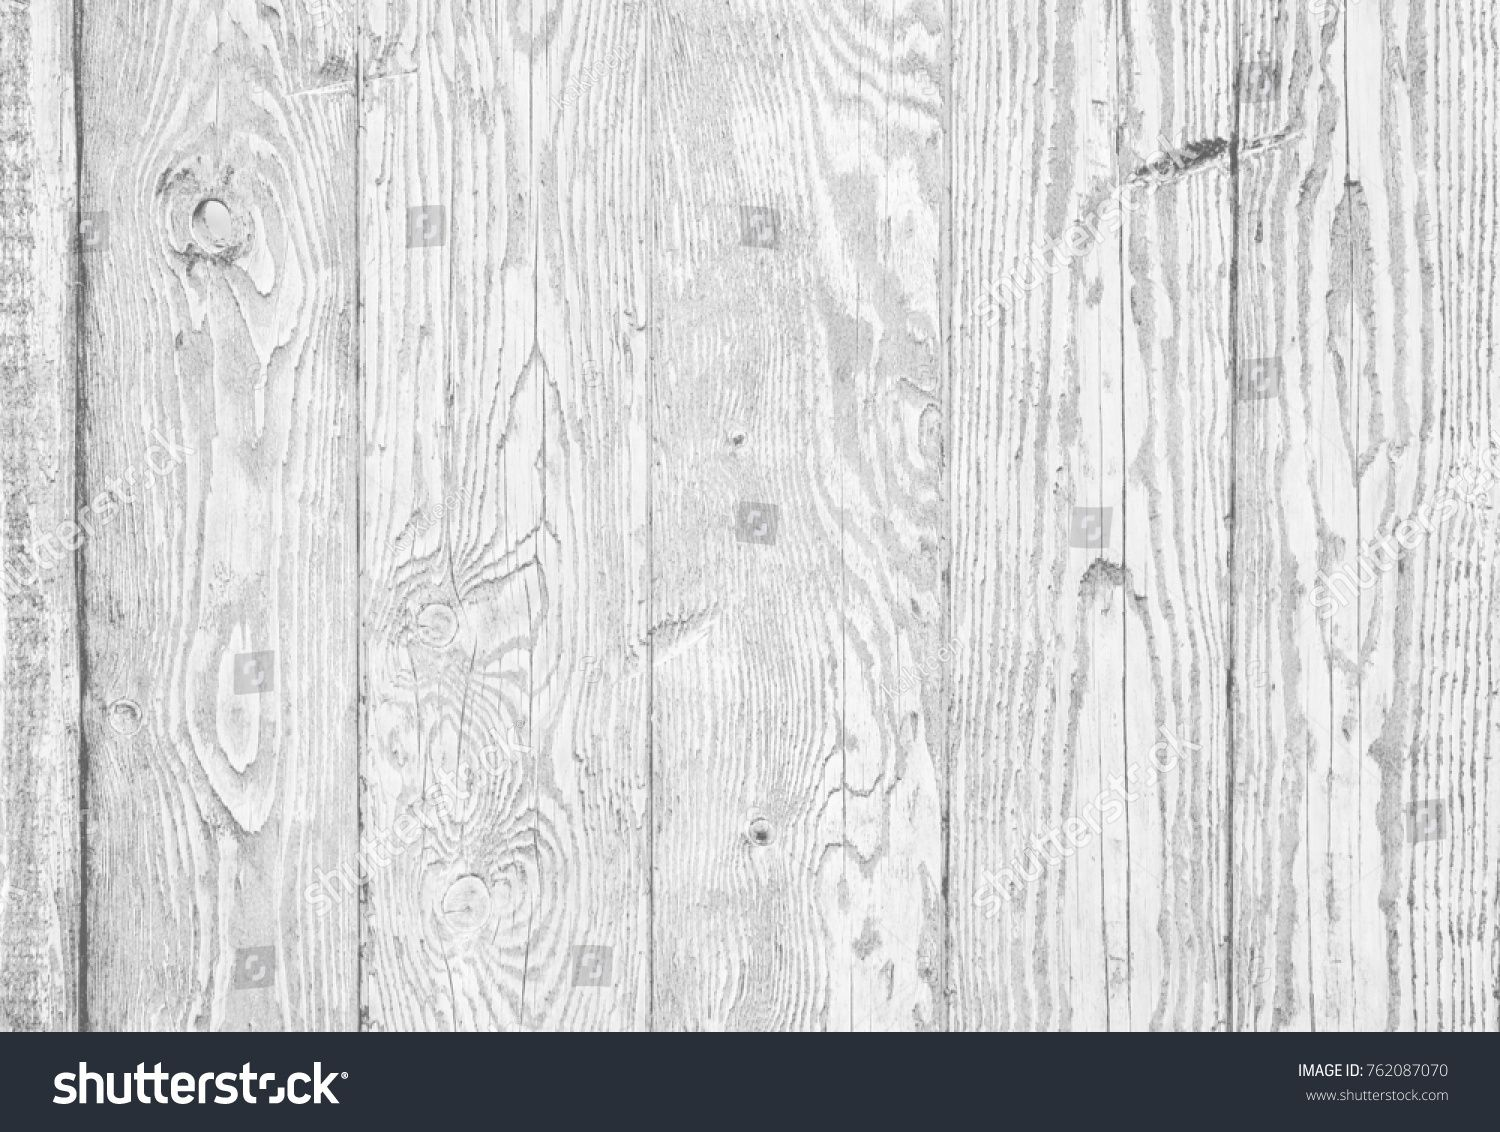 White Texture Background Of Distressed Pine Wood Natural